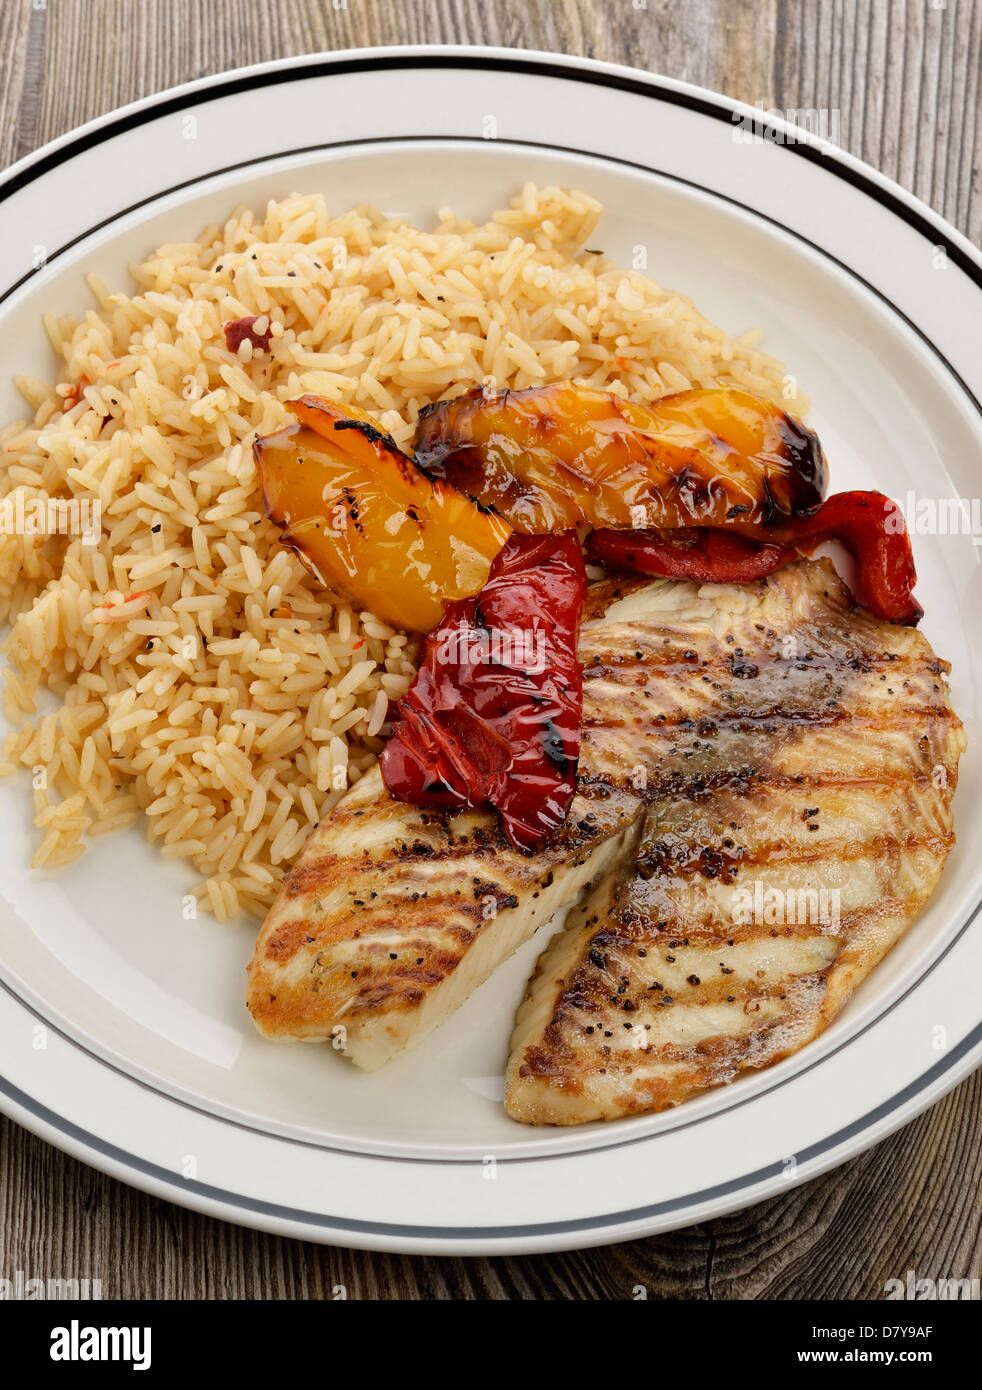 Grilled Tilapia Fillet With Rice And Vegetables Stock Photo Alamy